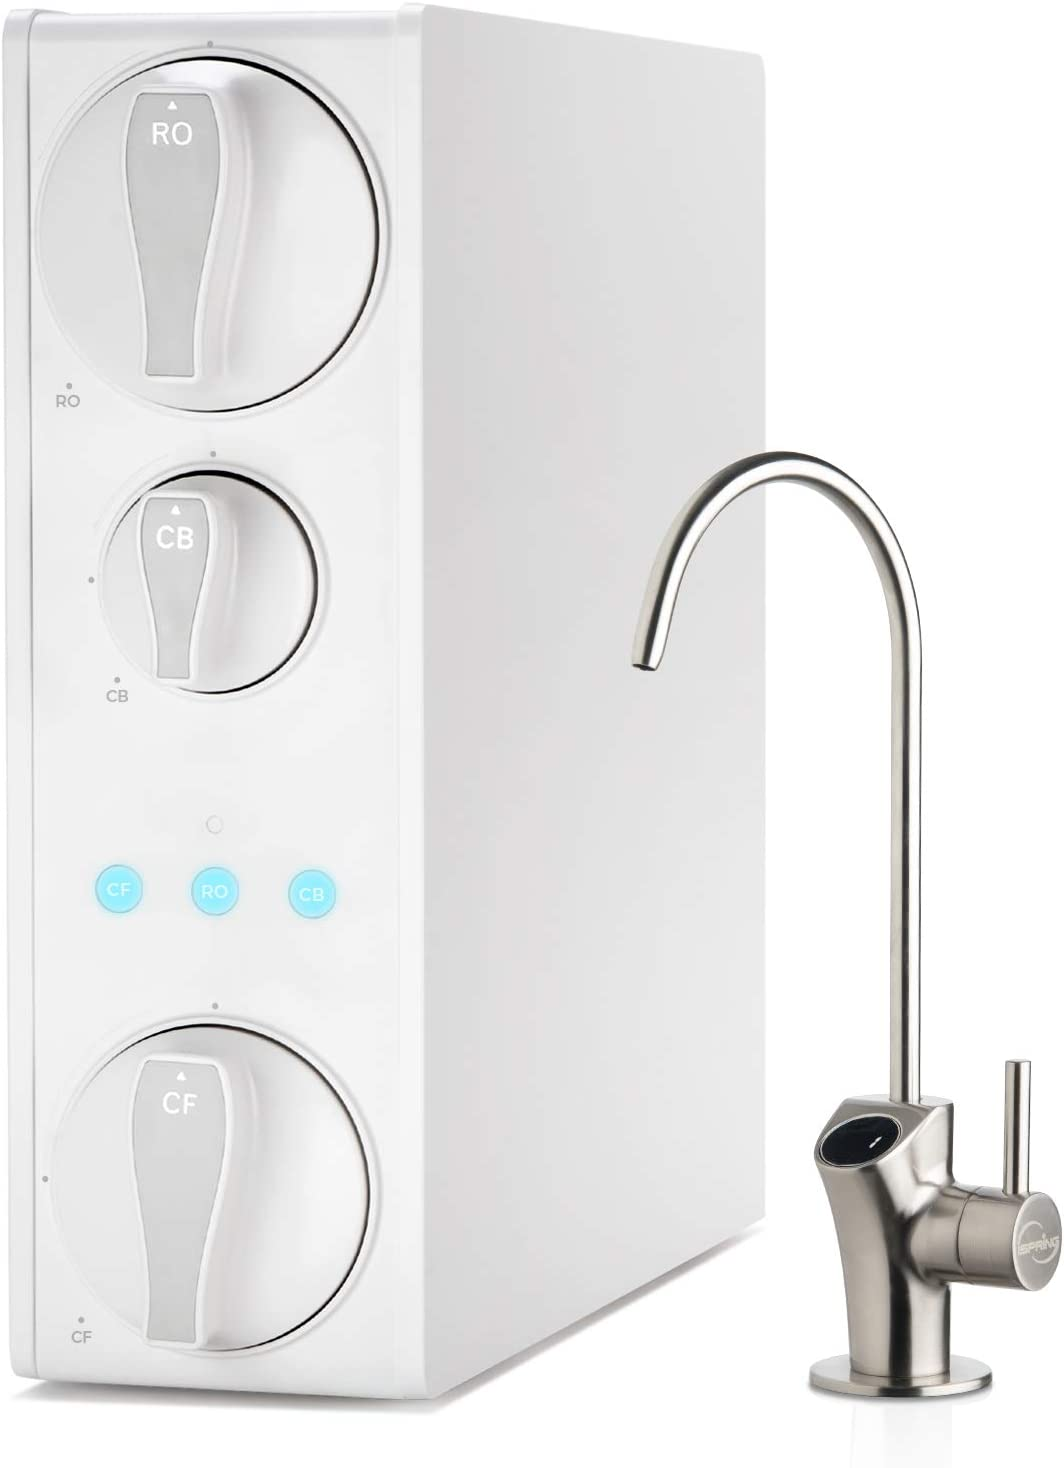 iSpring RO500 Tankless Reverse Osmosis System